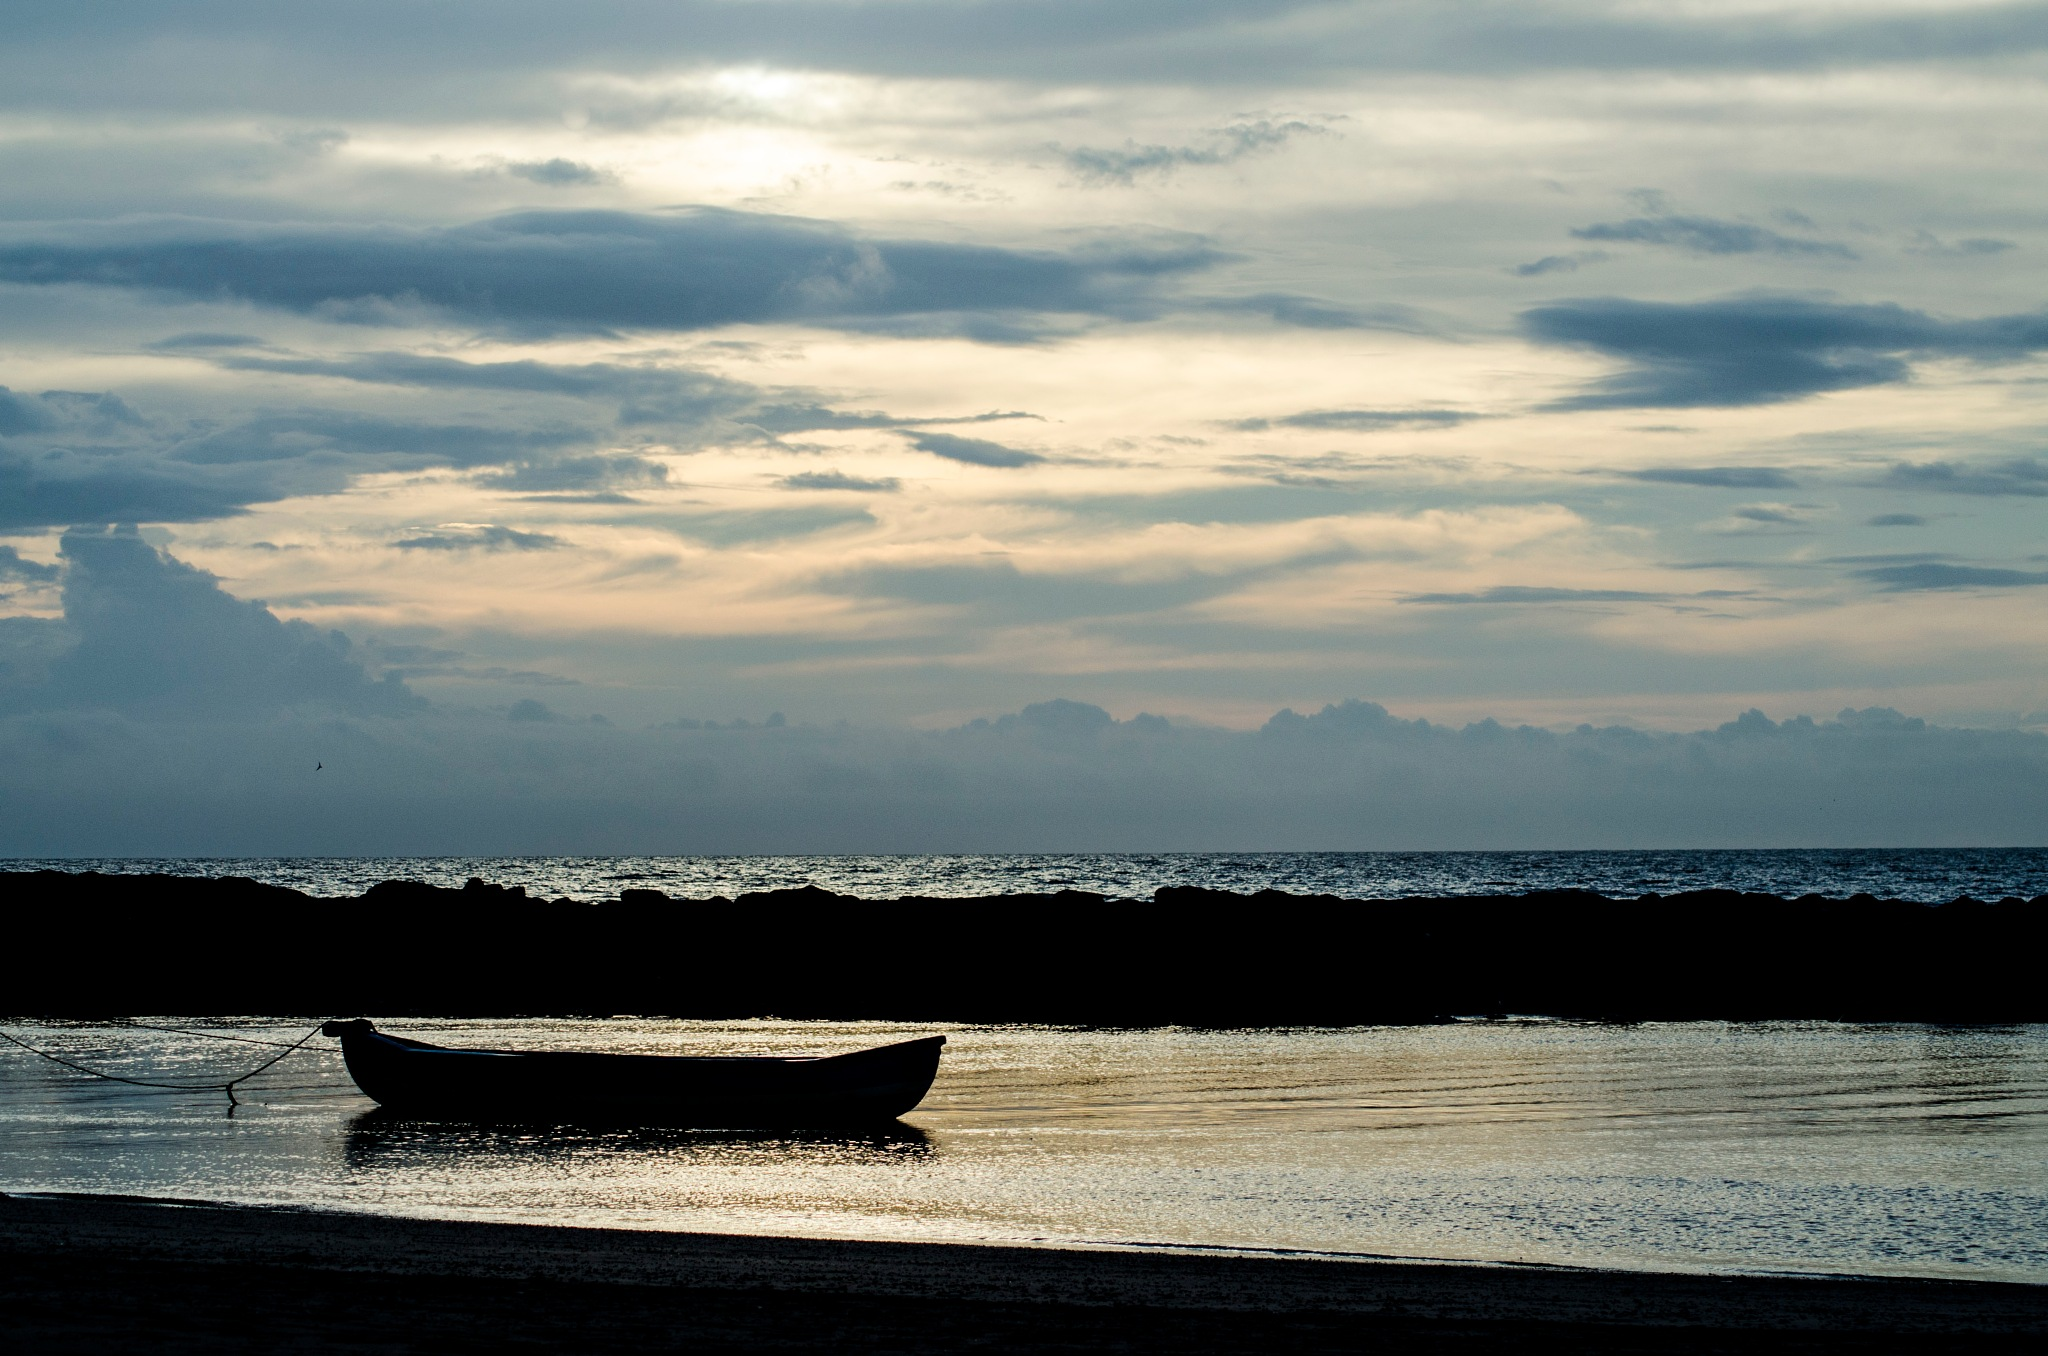 Boat at Sunset by Abhinav Nautiyal